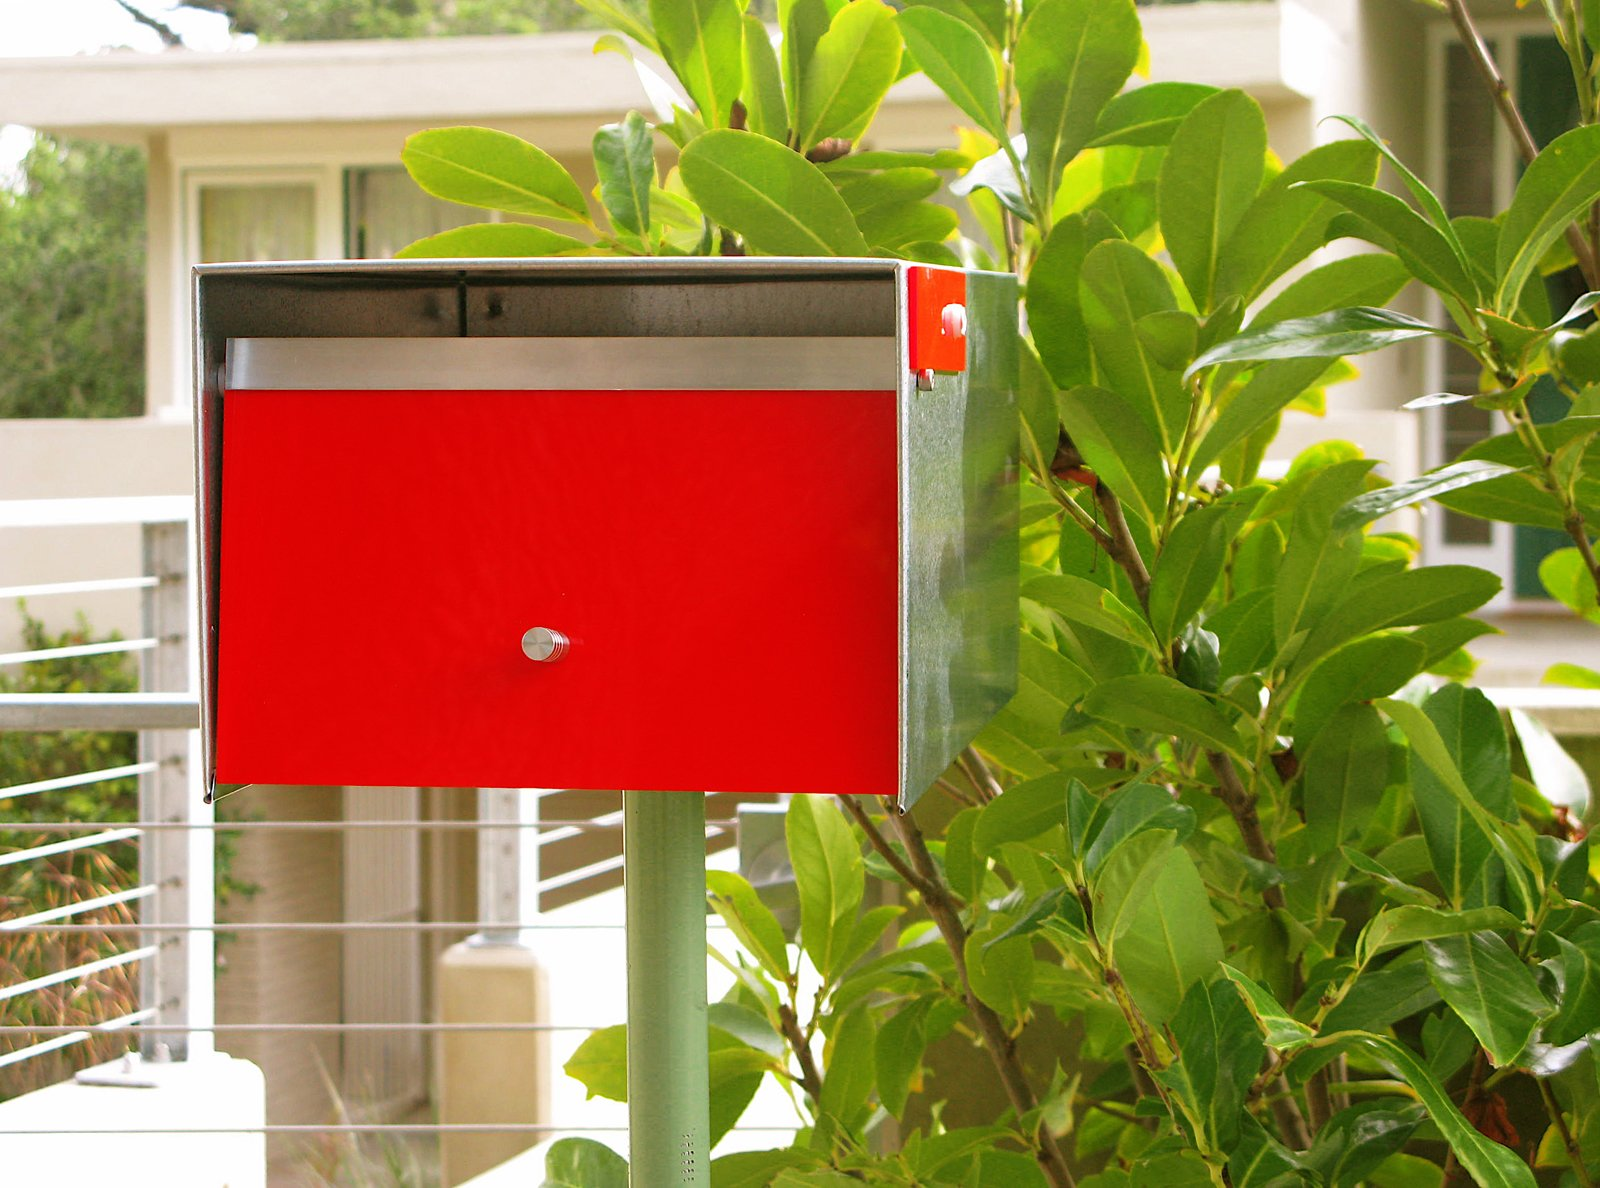 Outdoor, Front Yard, and Shrubs The Neutra Box is handmade from locally sourced, upcycled sheet metal remnants, reclaimed mostly from outfits in Richmond, California. The box retails for $199.00 and is available in red and black.  Photo 5 of 6 in 8 Best Modern Mailboxes to Buy